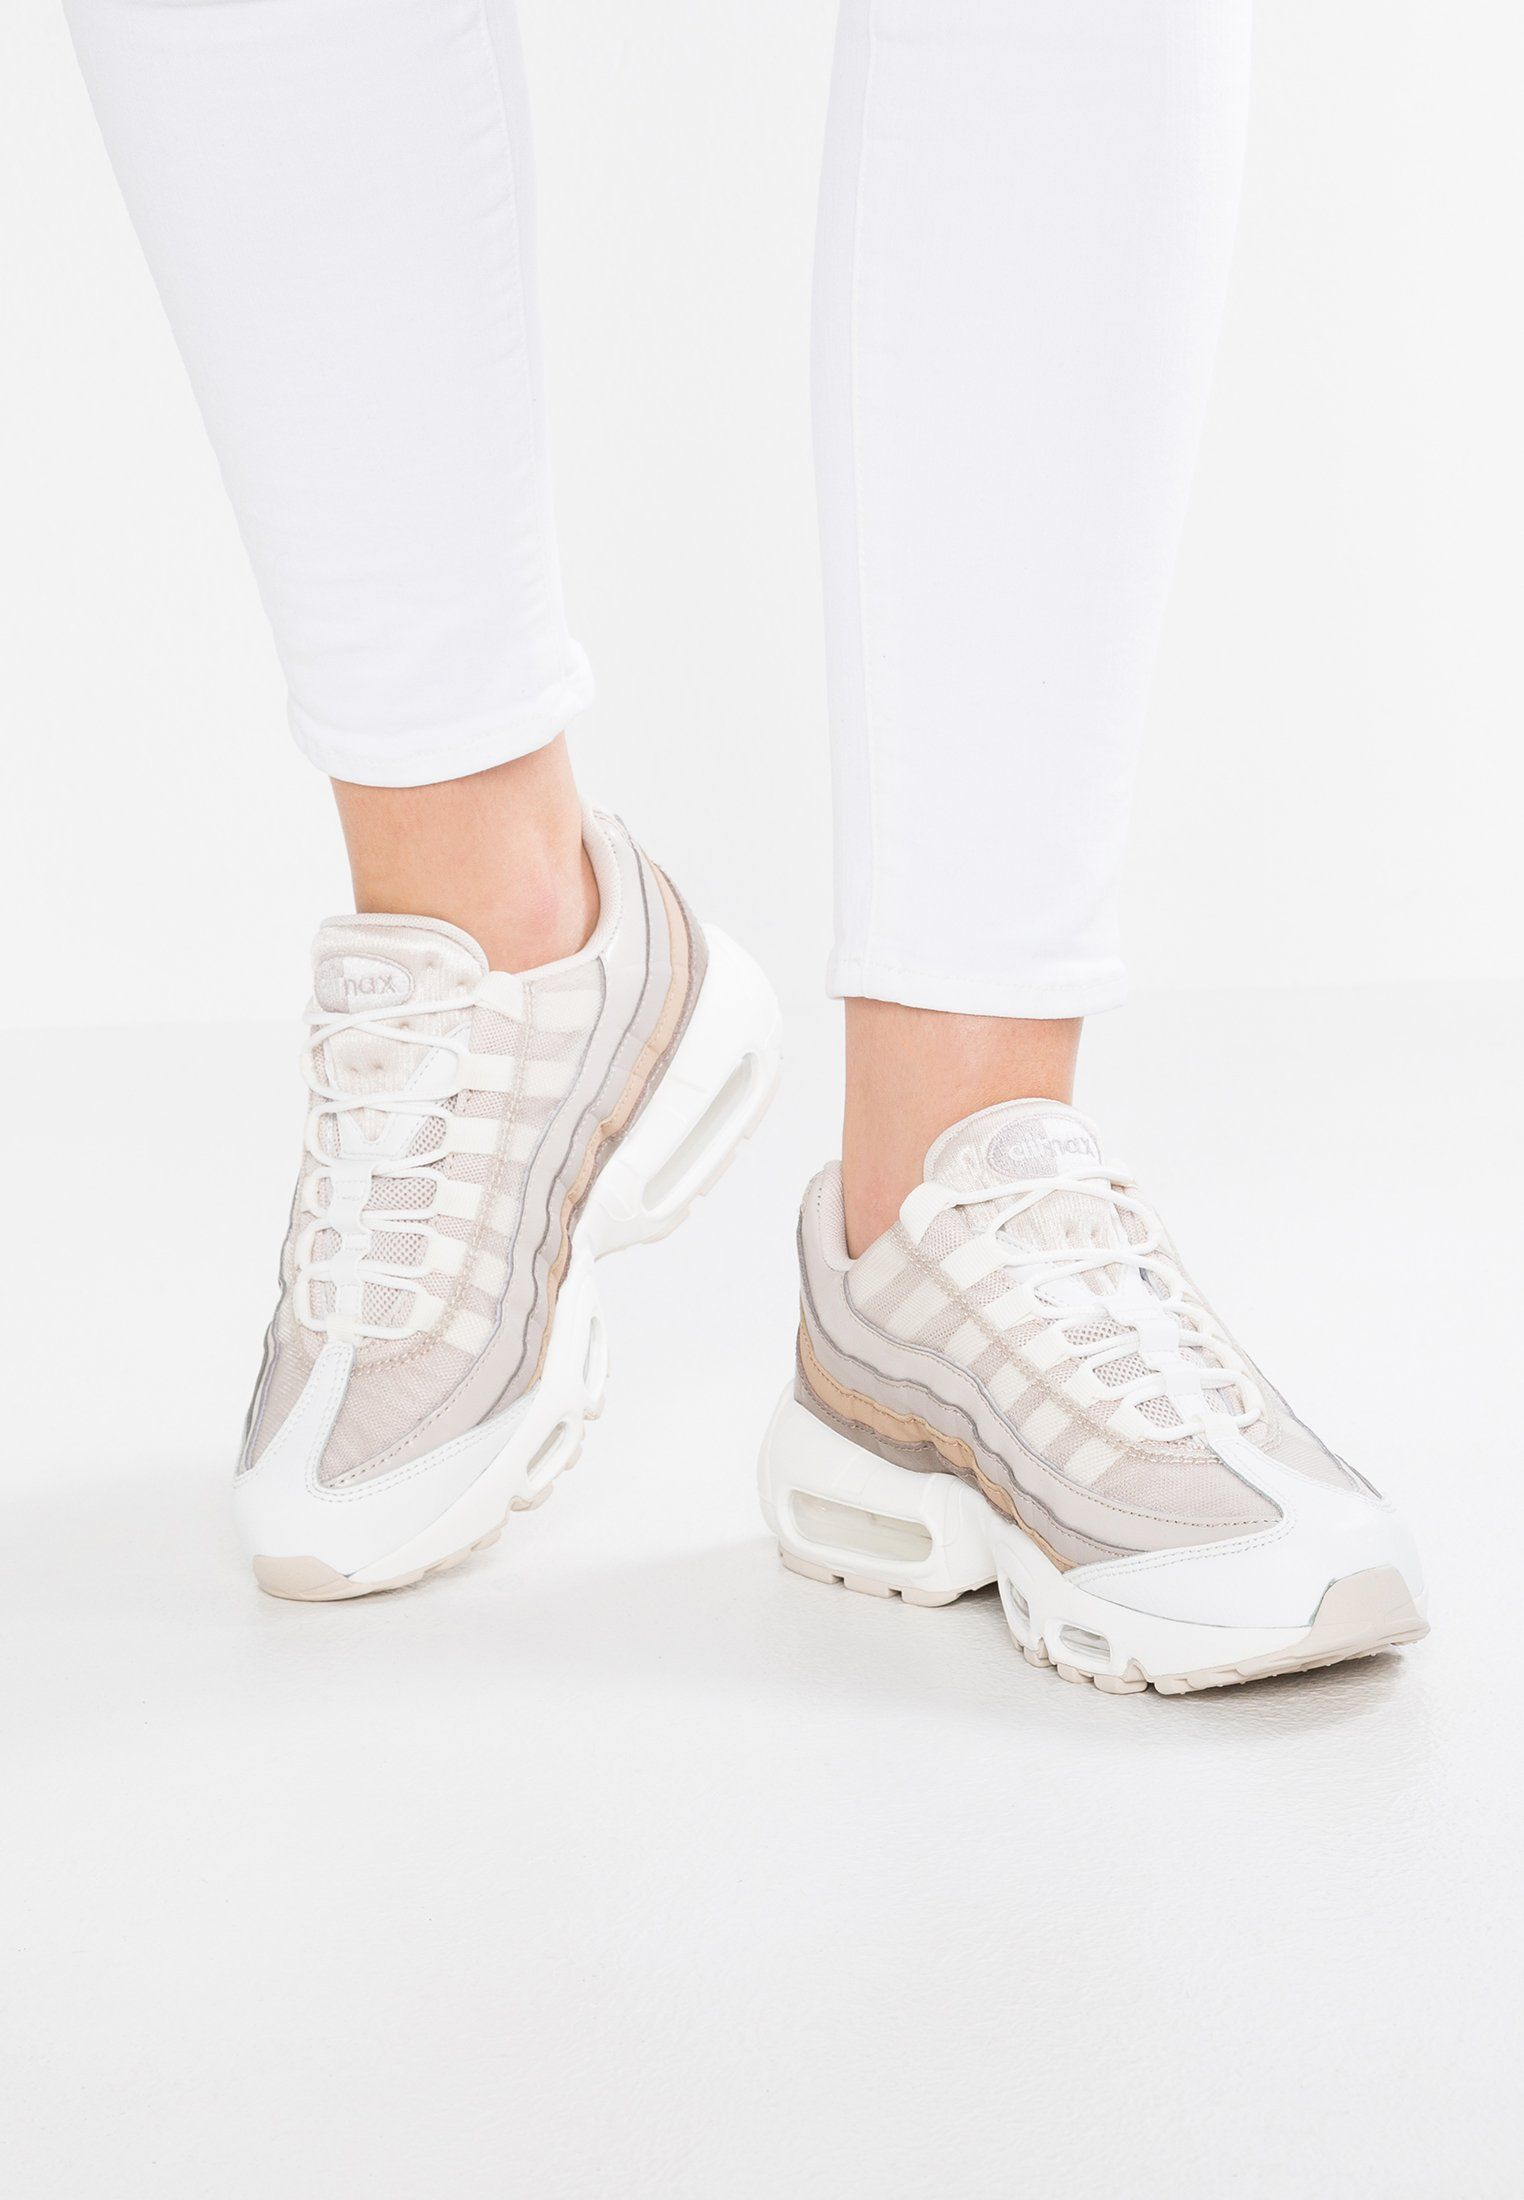 discount code for nike air max 95 zalando 59d69 03542